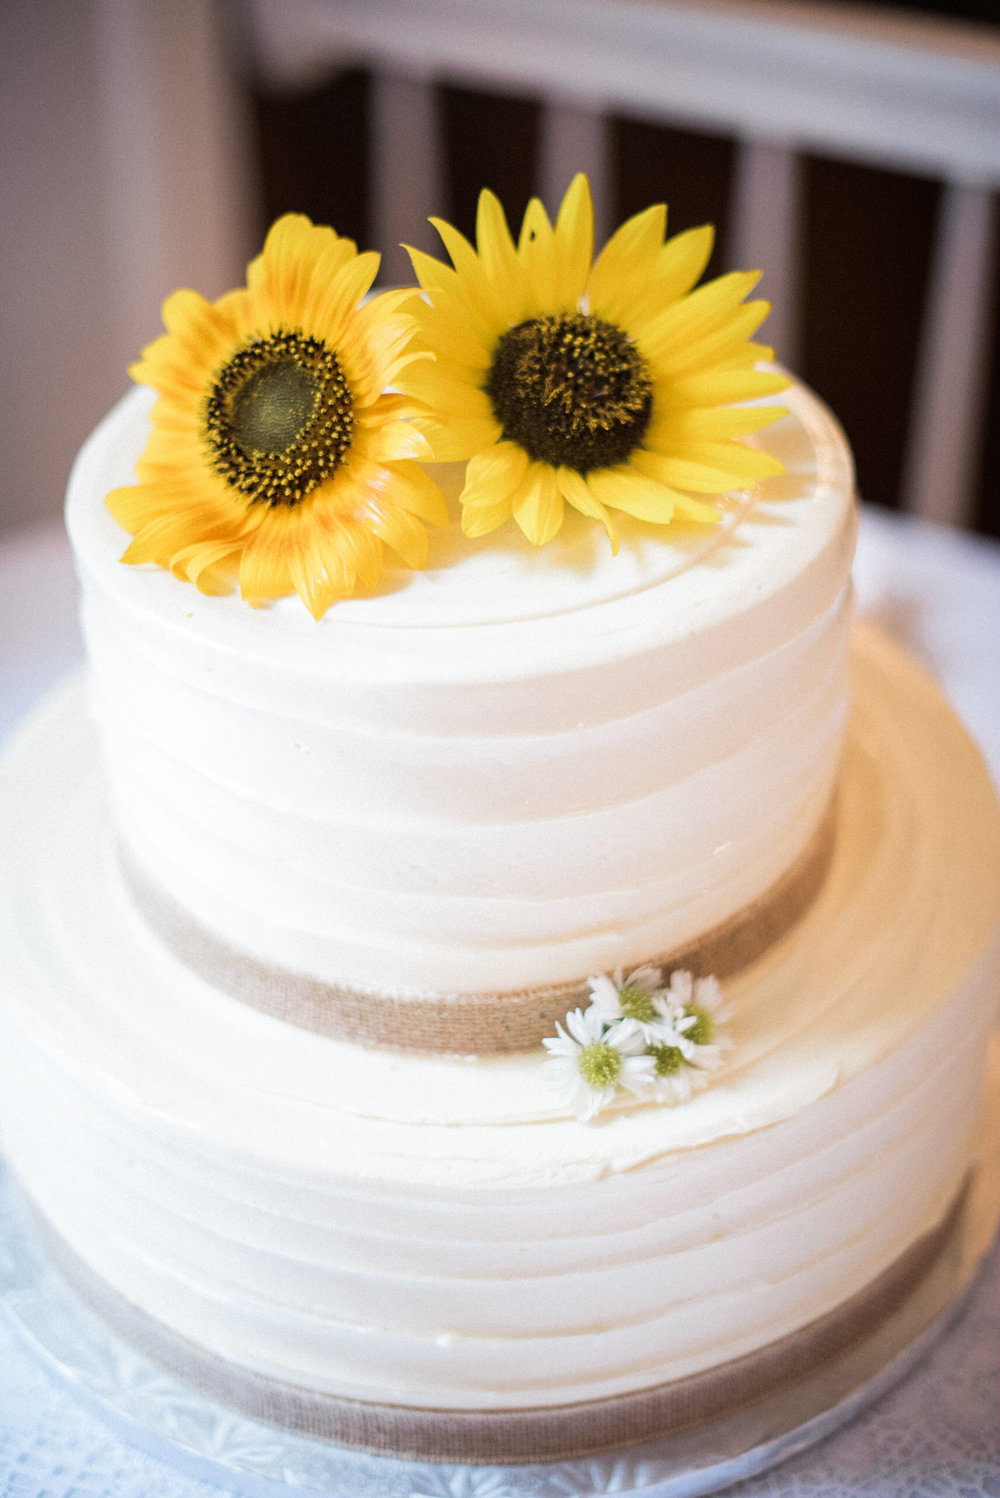 Sunflowers on wedding cake